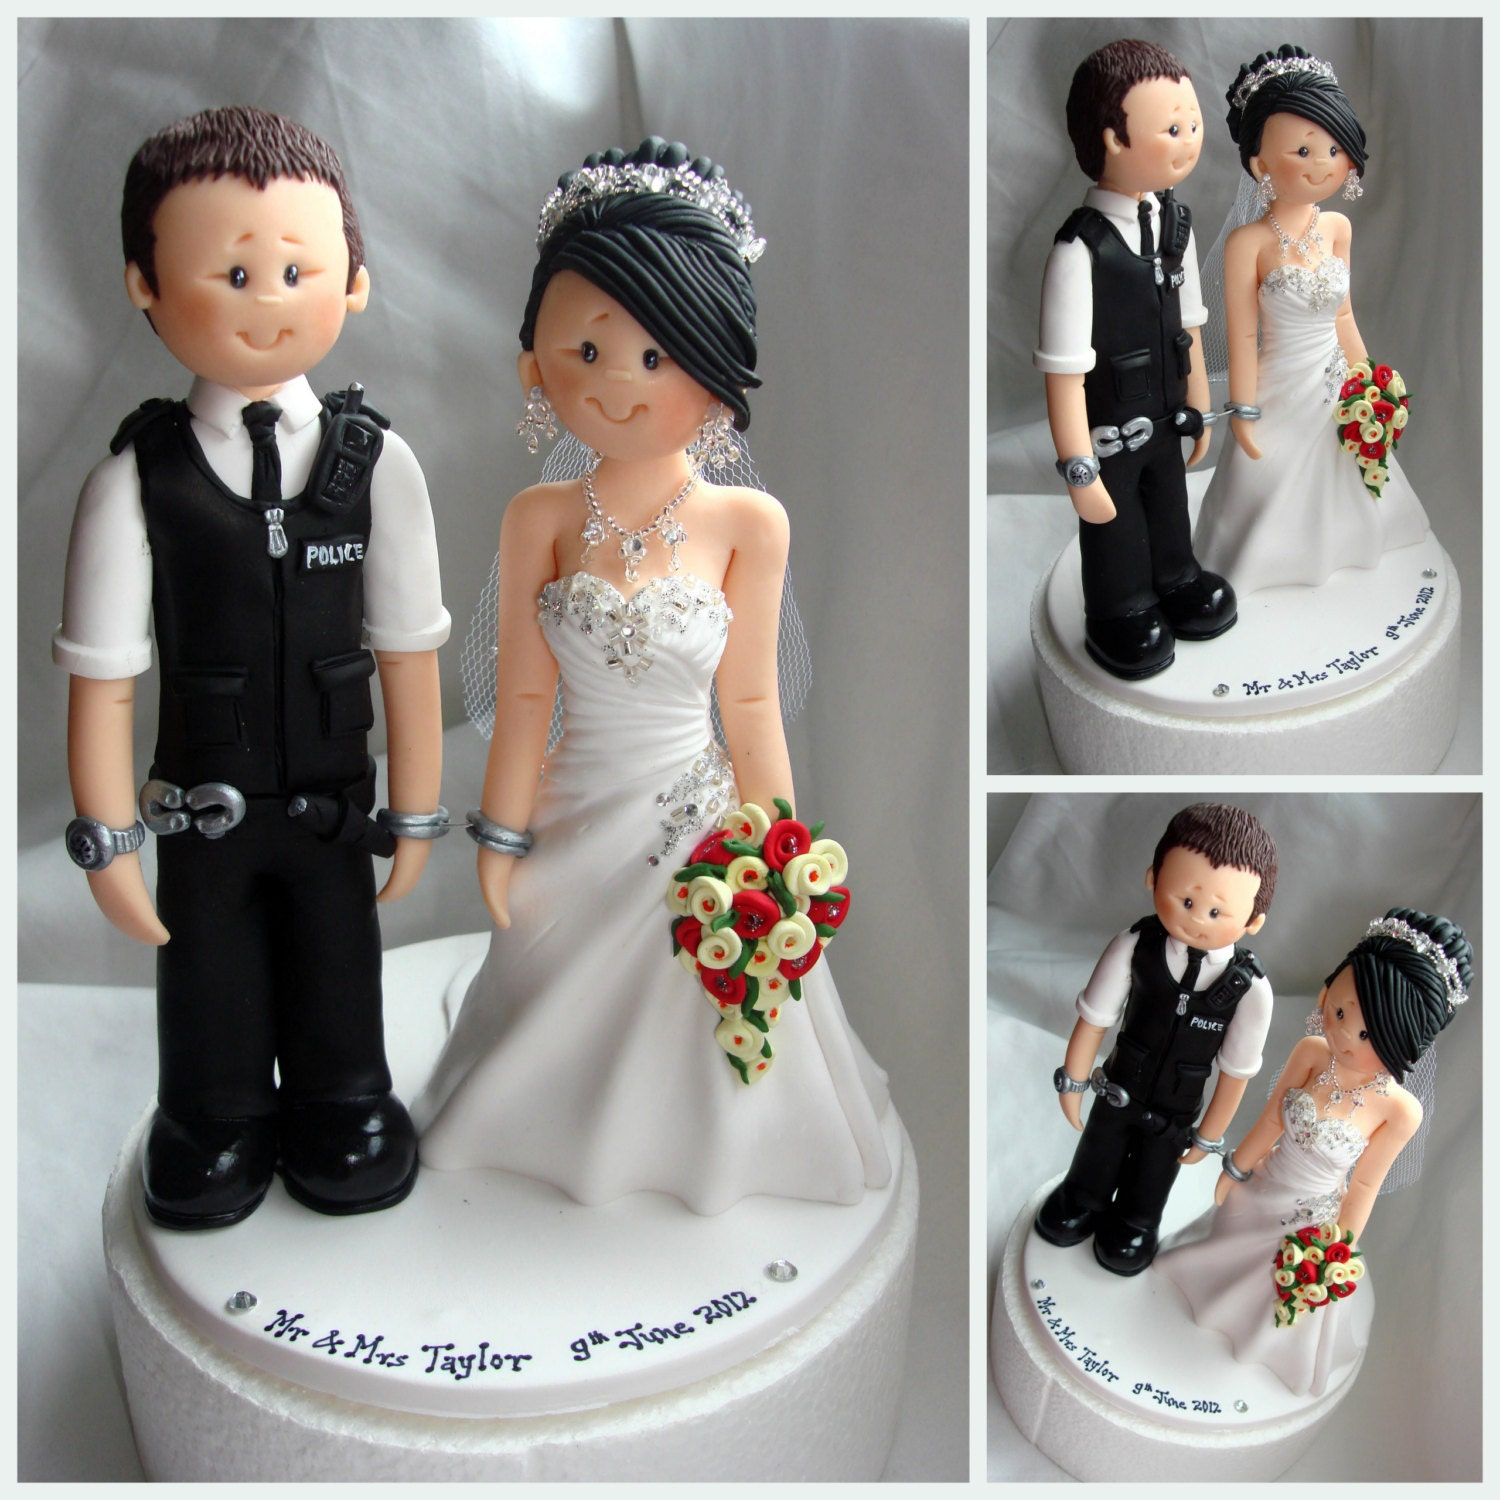 Bride Wedding Cake Topper: Bride Handcuffed With Police Groom Wedding Cake Topper Custom